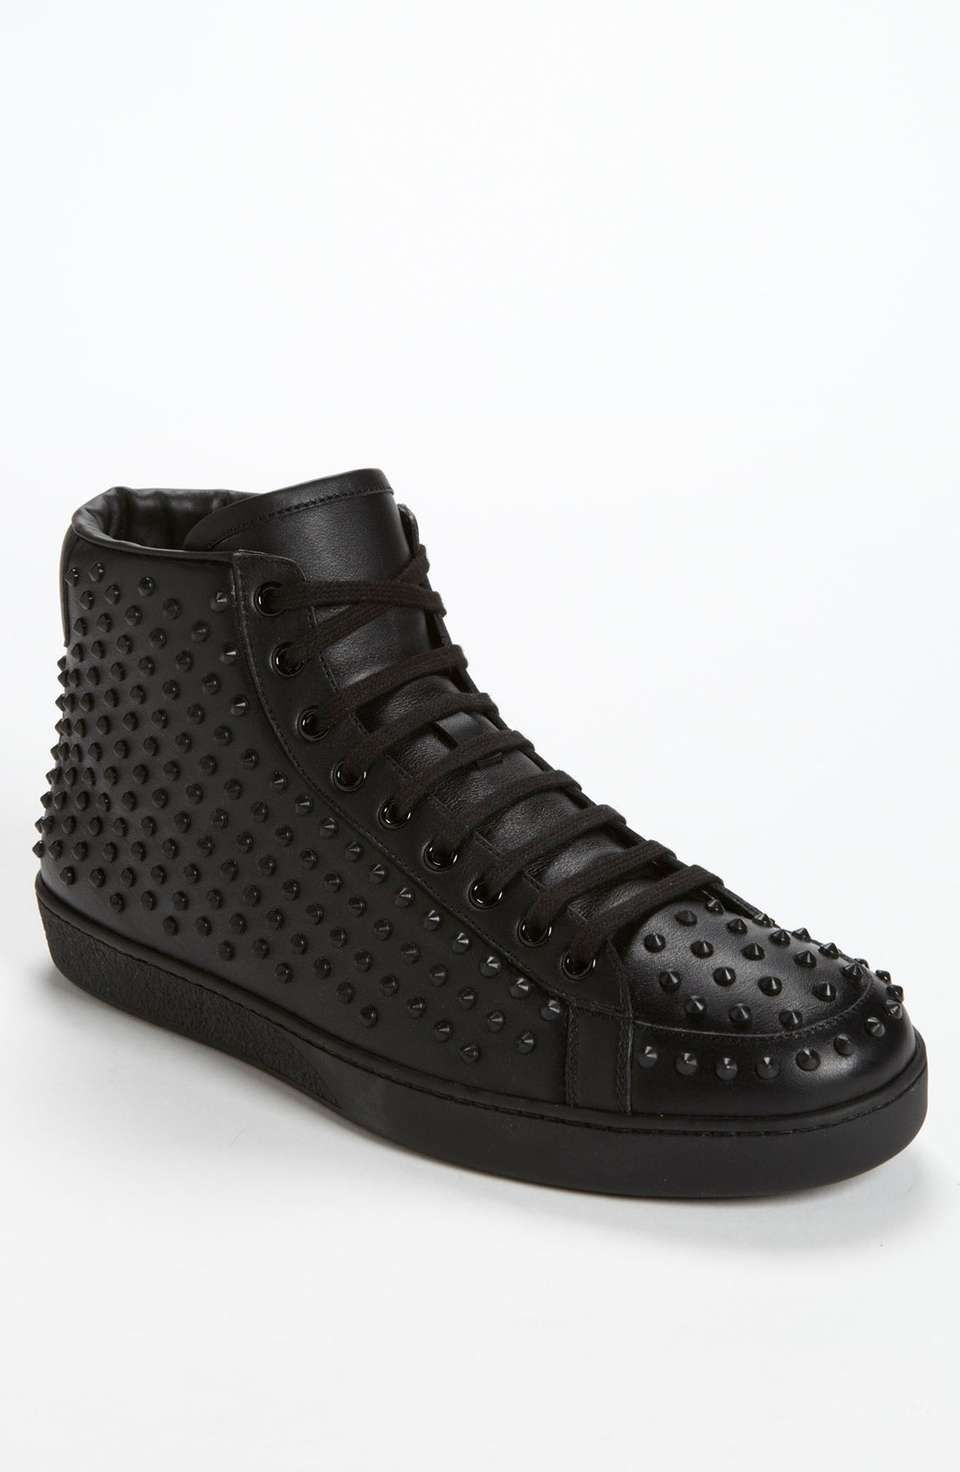 50d9d3ad988 Toothy rubber studs add a touch of danger to a retro high-top sneaker in a  monochrome cast.Removable insole.Leather upper and lining rubber sole.By  Gucci ...